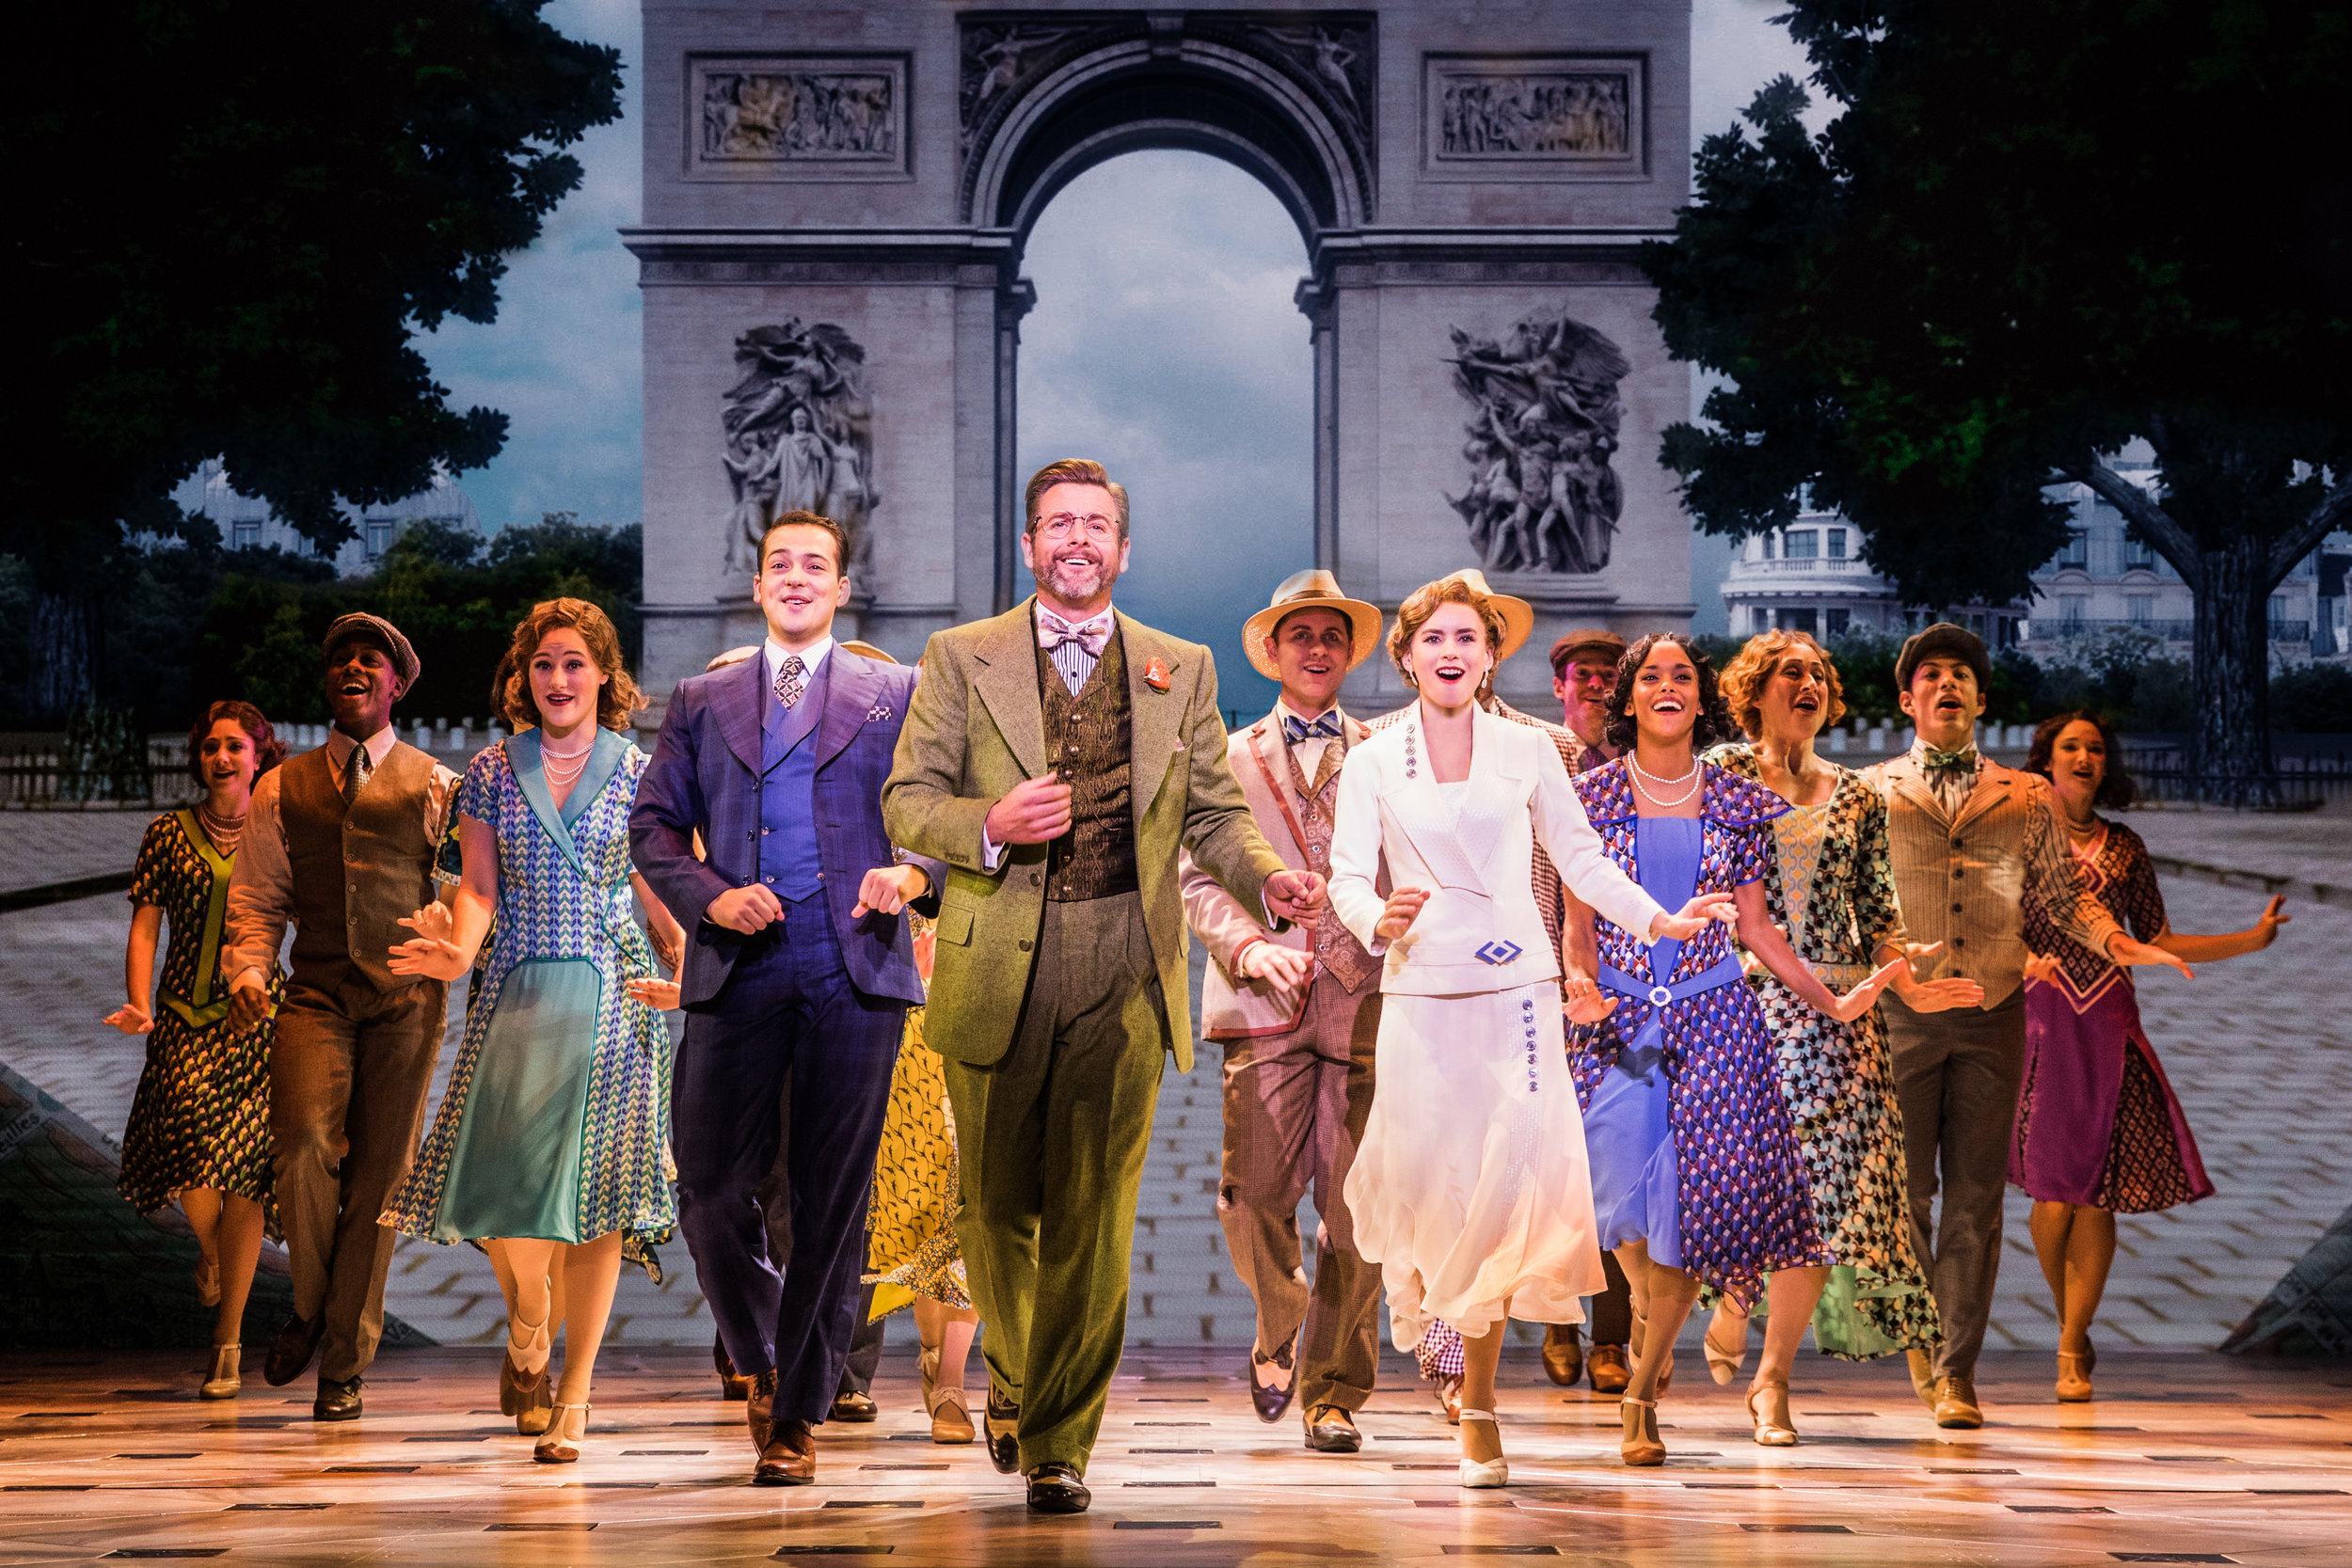 Edward Staudenmayer (Vlad), Lila Coogan (Anya), Stephen Brower (Dmitry) and the company (including Ronnie S. Bowman, Jr) of the National Tour of ANASTASIA. Photo by Evan Zimmerman, MurphyMade